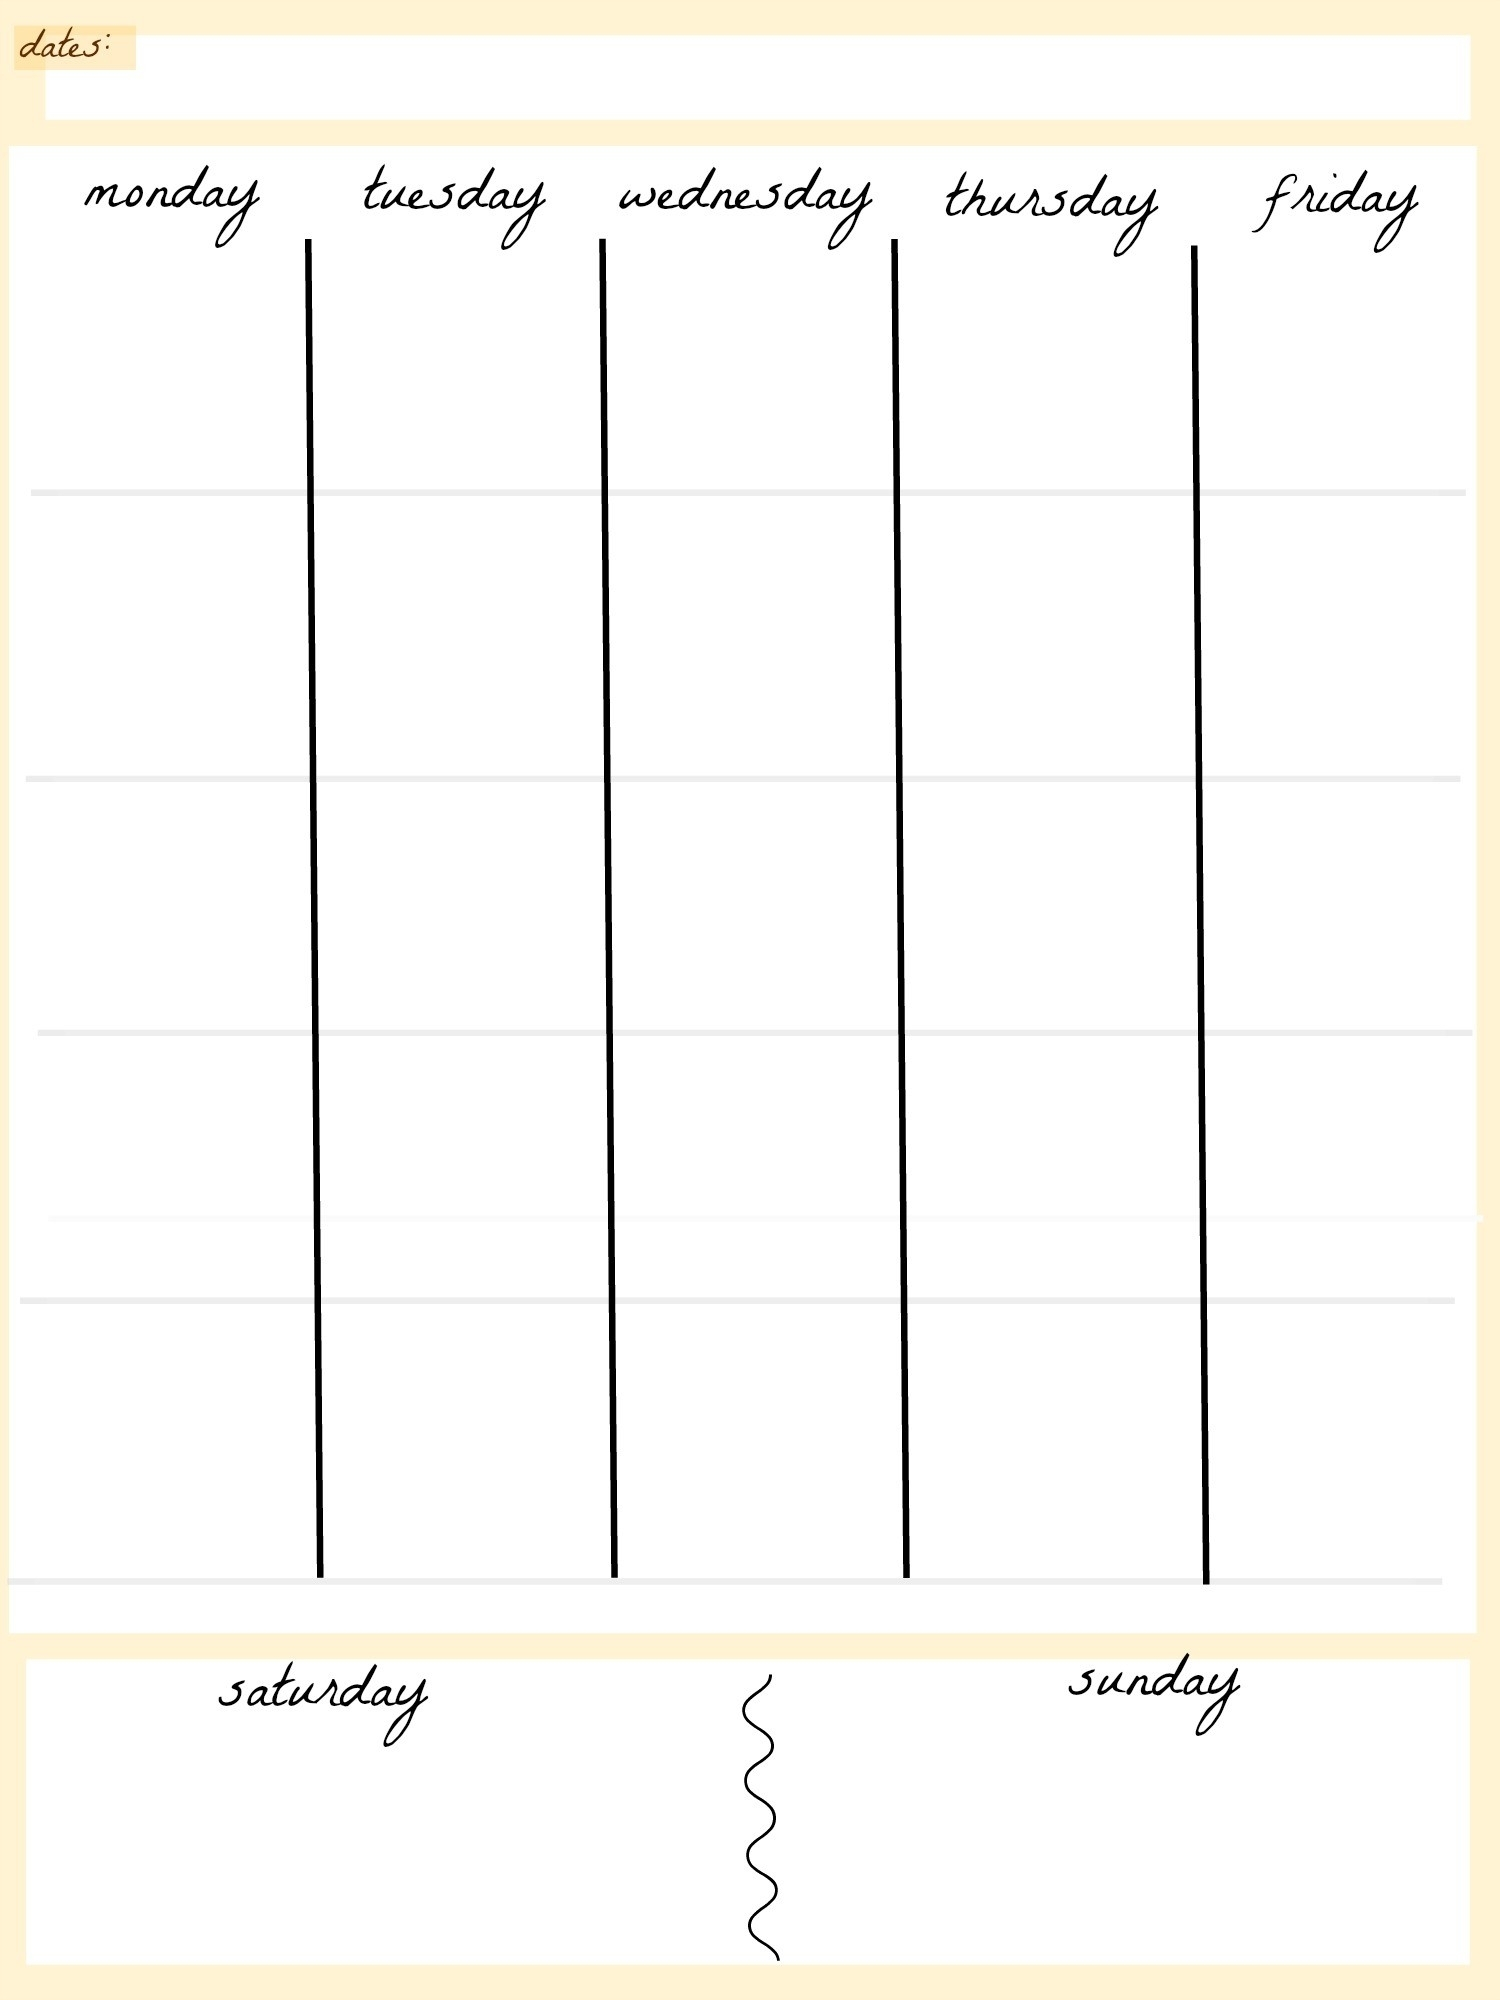 Blank Calendar Template 5 Day Week Weekly Calendar 5 Day Travel Cal1 with 5 Day Calendar Template Free